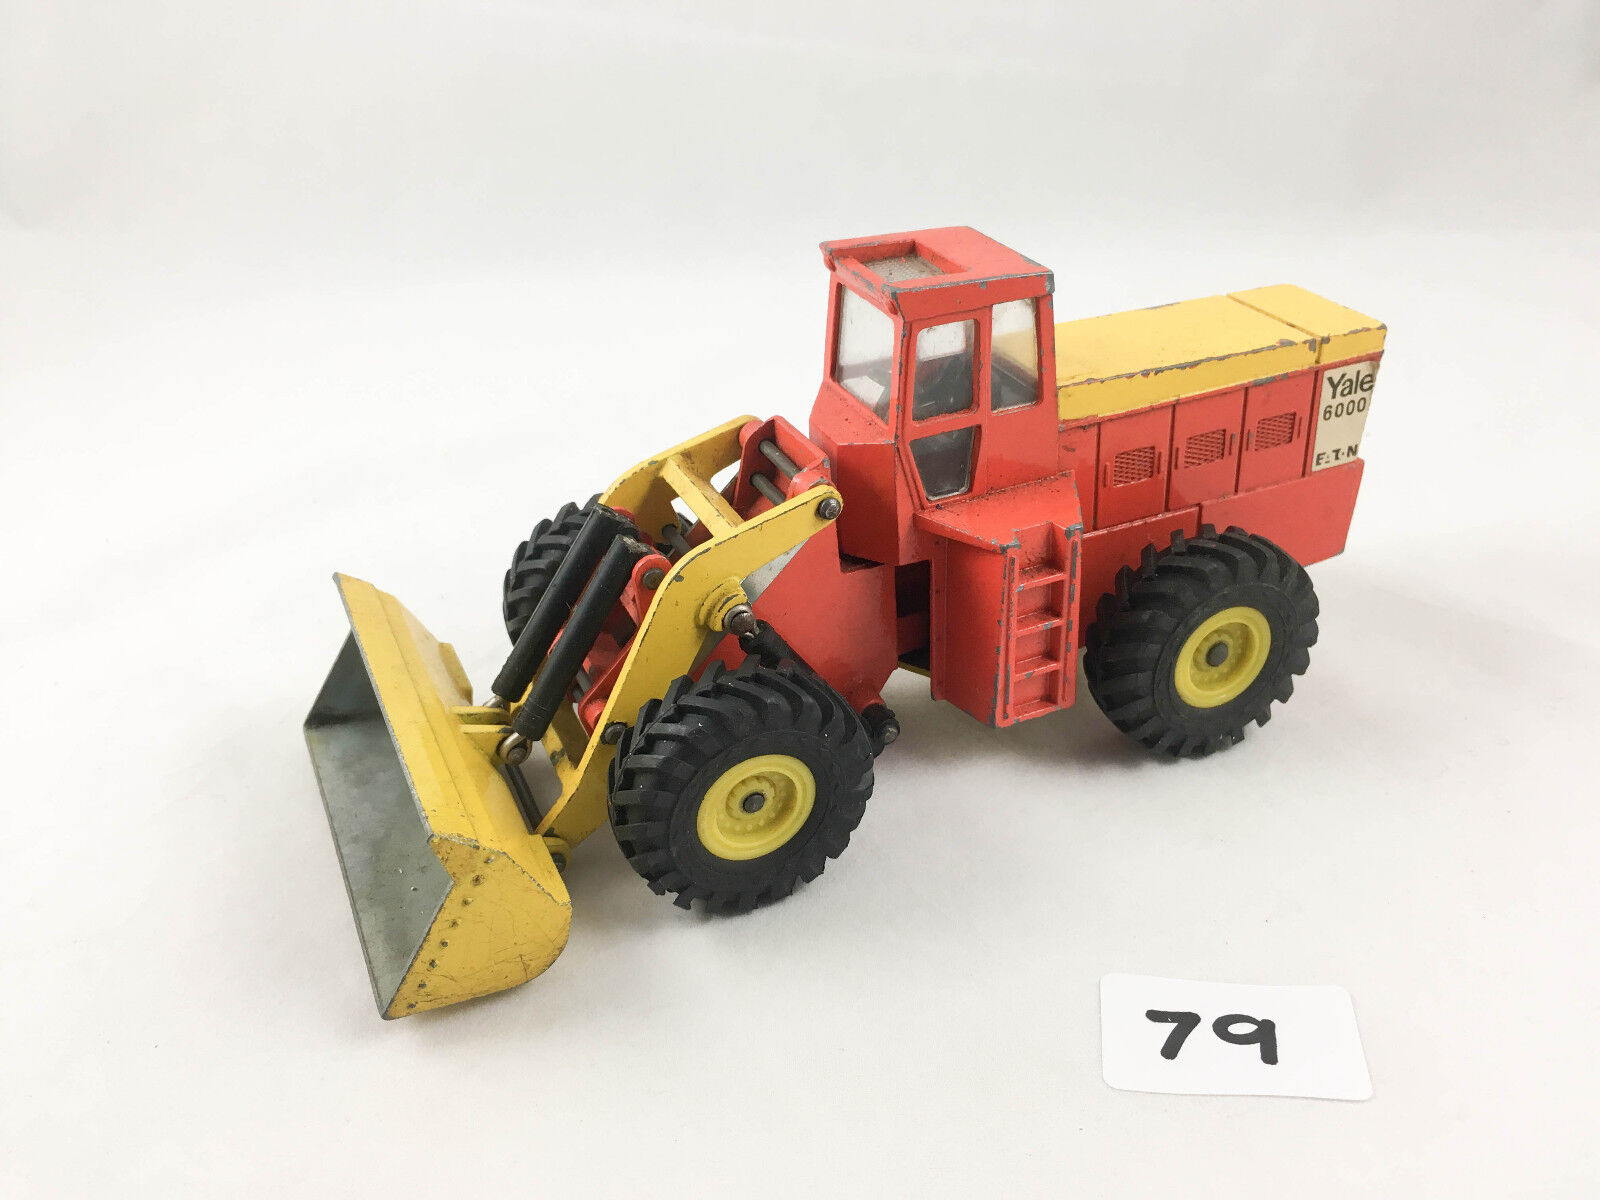 VERY RARE DINKY SpielzeugS   973 EATON YALE ARTICULATED TRACTOR SHOVEL 1971-75